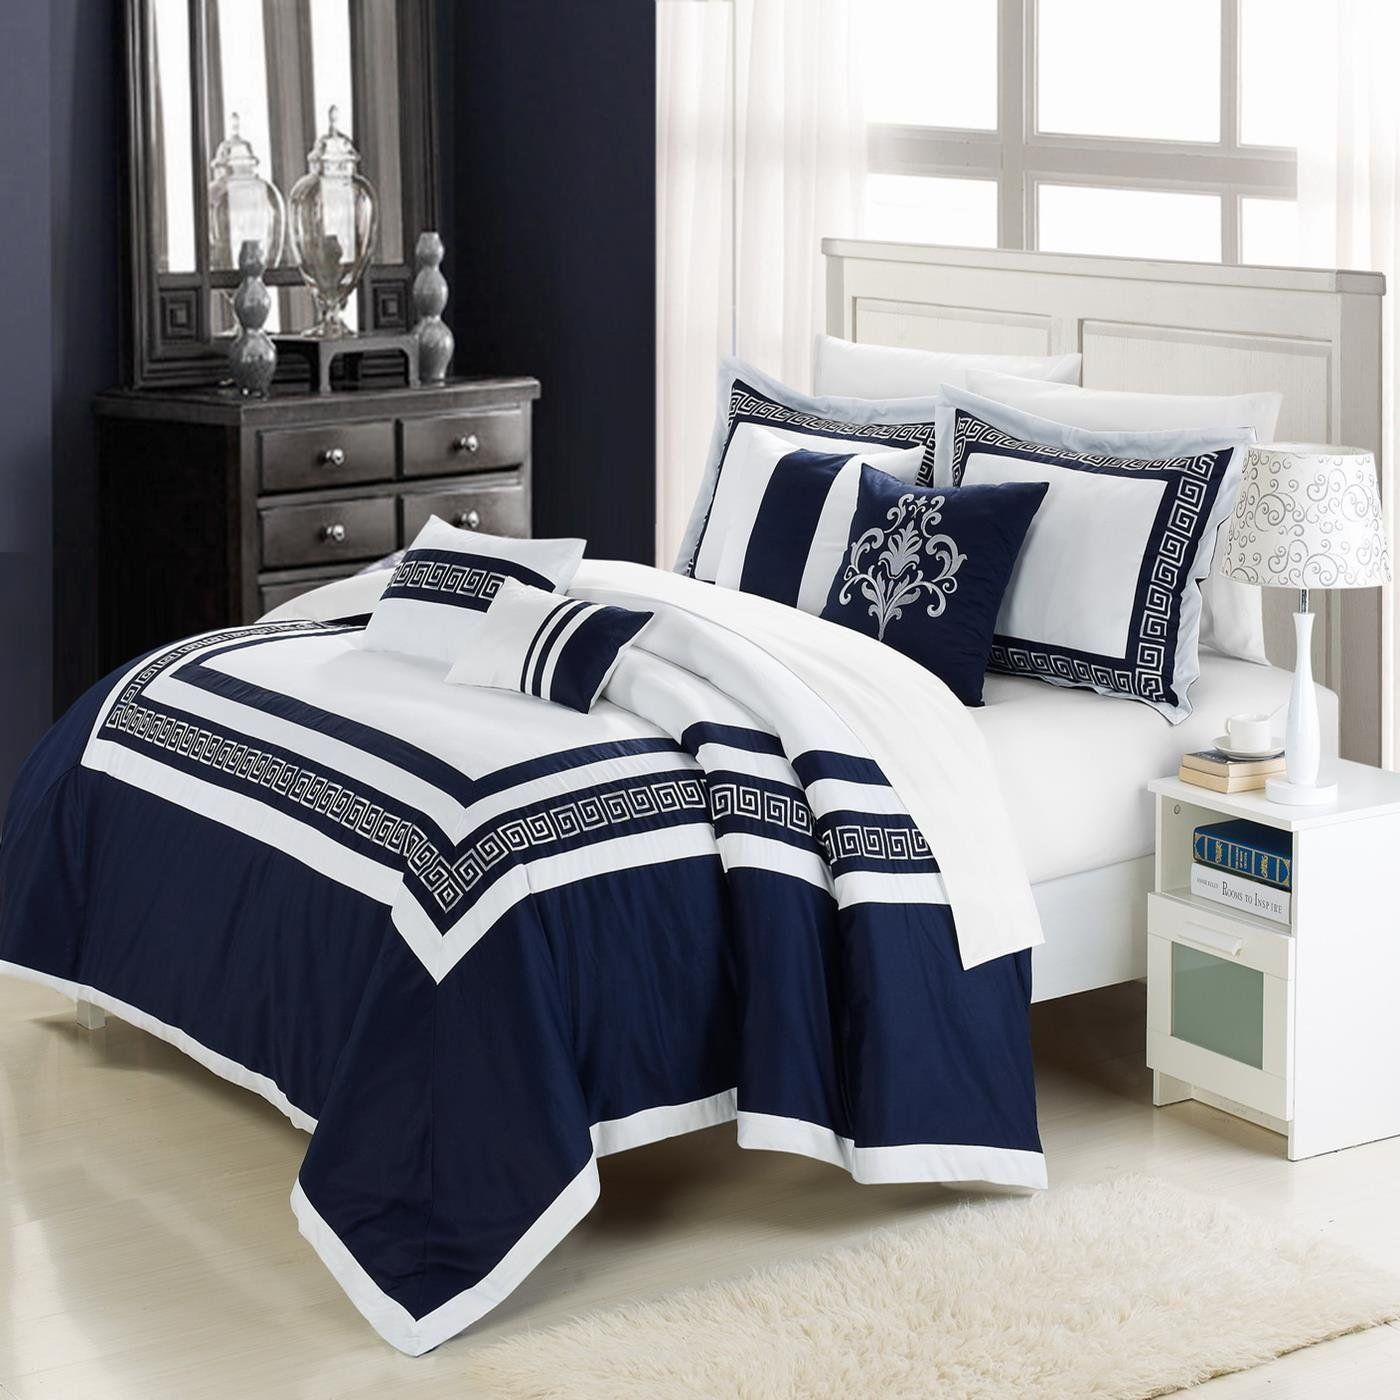 White Blue Comforter Sets King In 2020 Blue Comforter Sets Blue And White Comforter Blue Bedroom